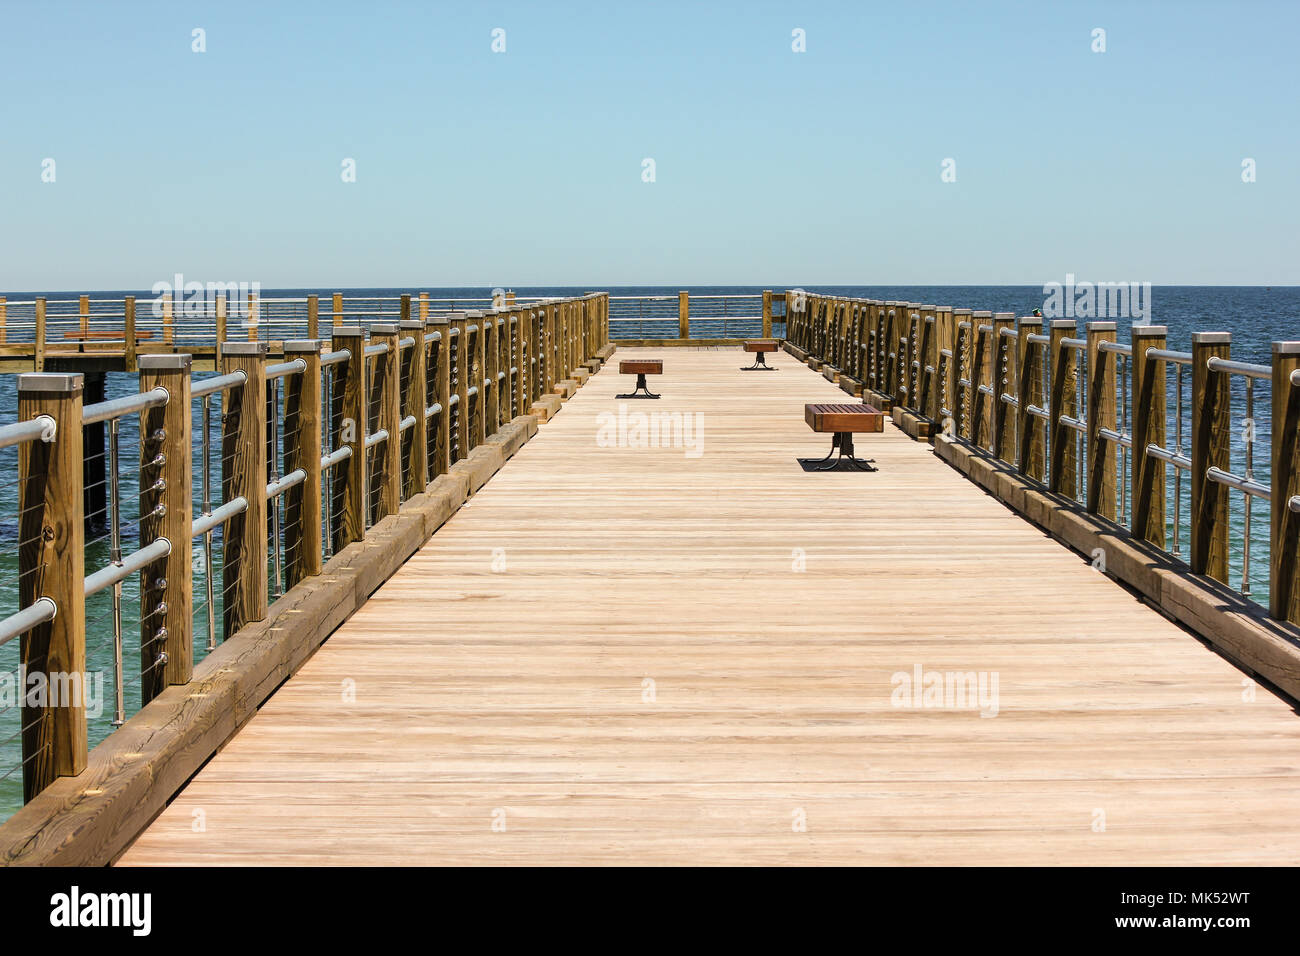 Pier in Oak Bluffs, Martha's Vineyard Stockbild